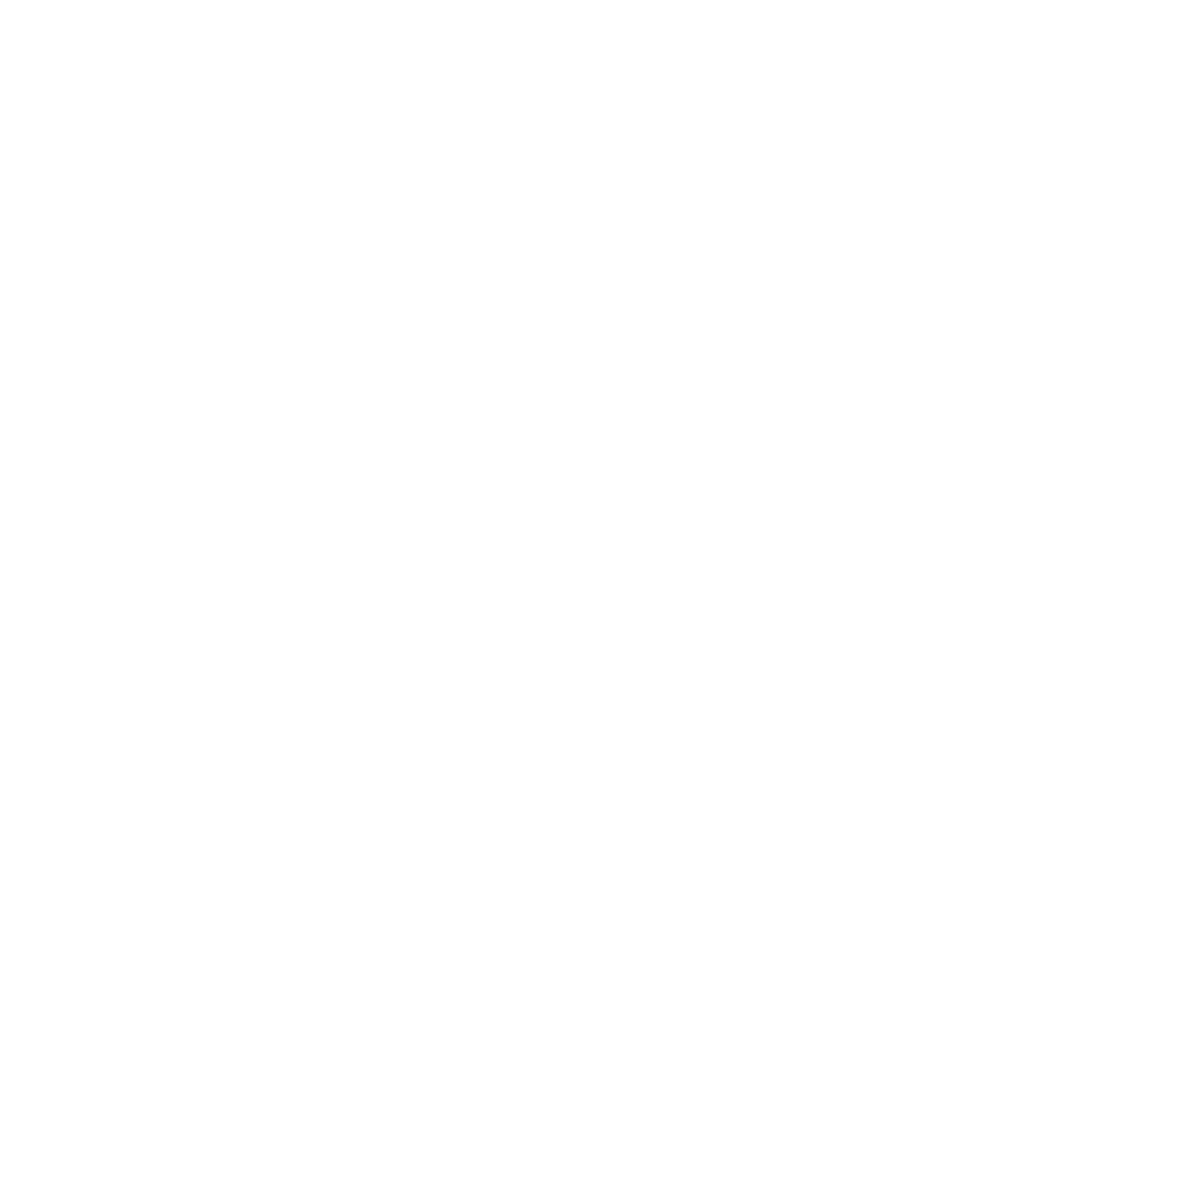 logo Stadtoase Kolping